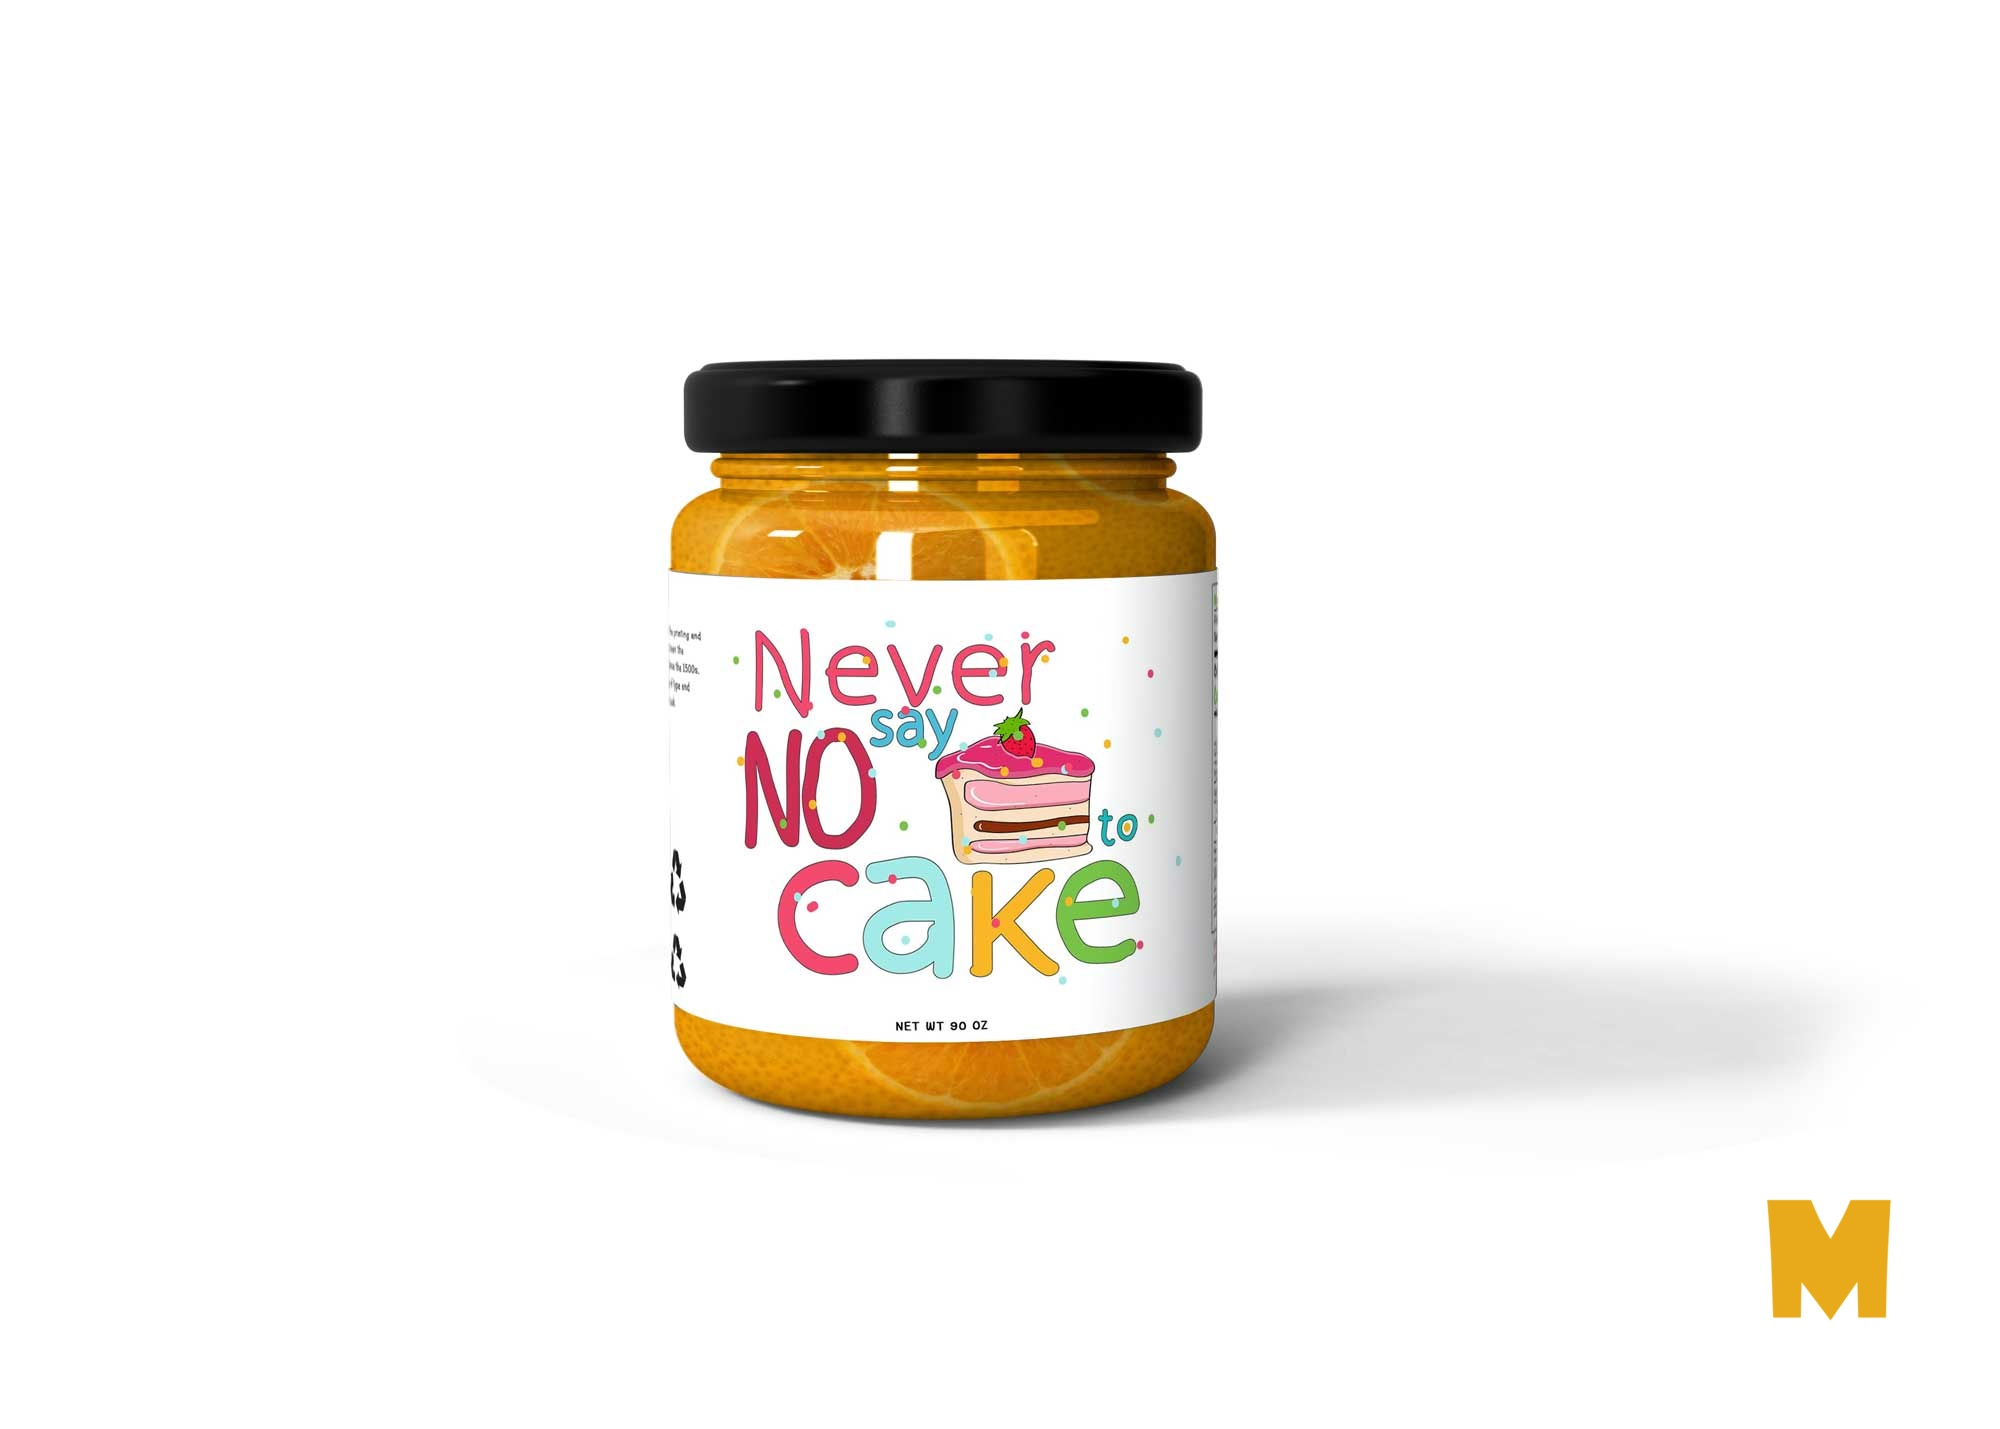 Baby Food Jar Bottle Label Mockup